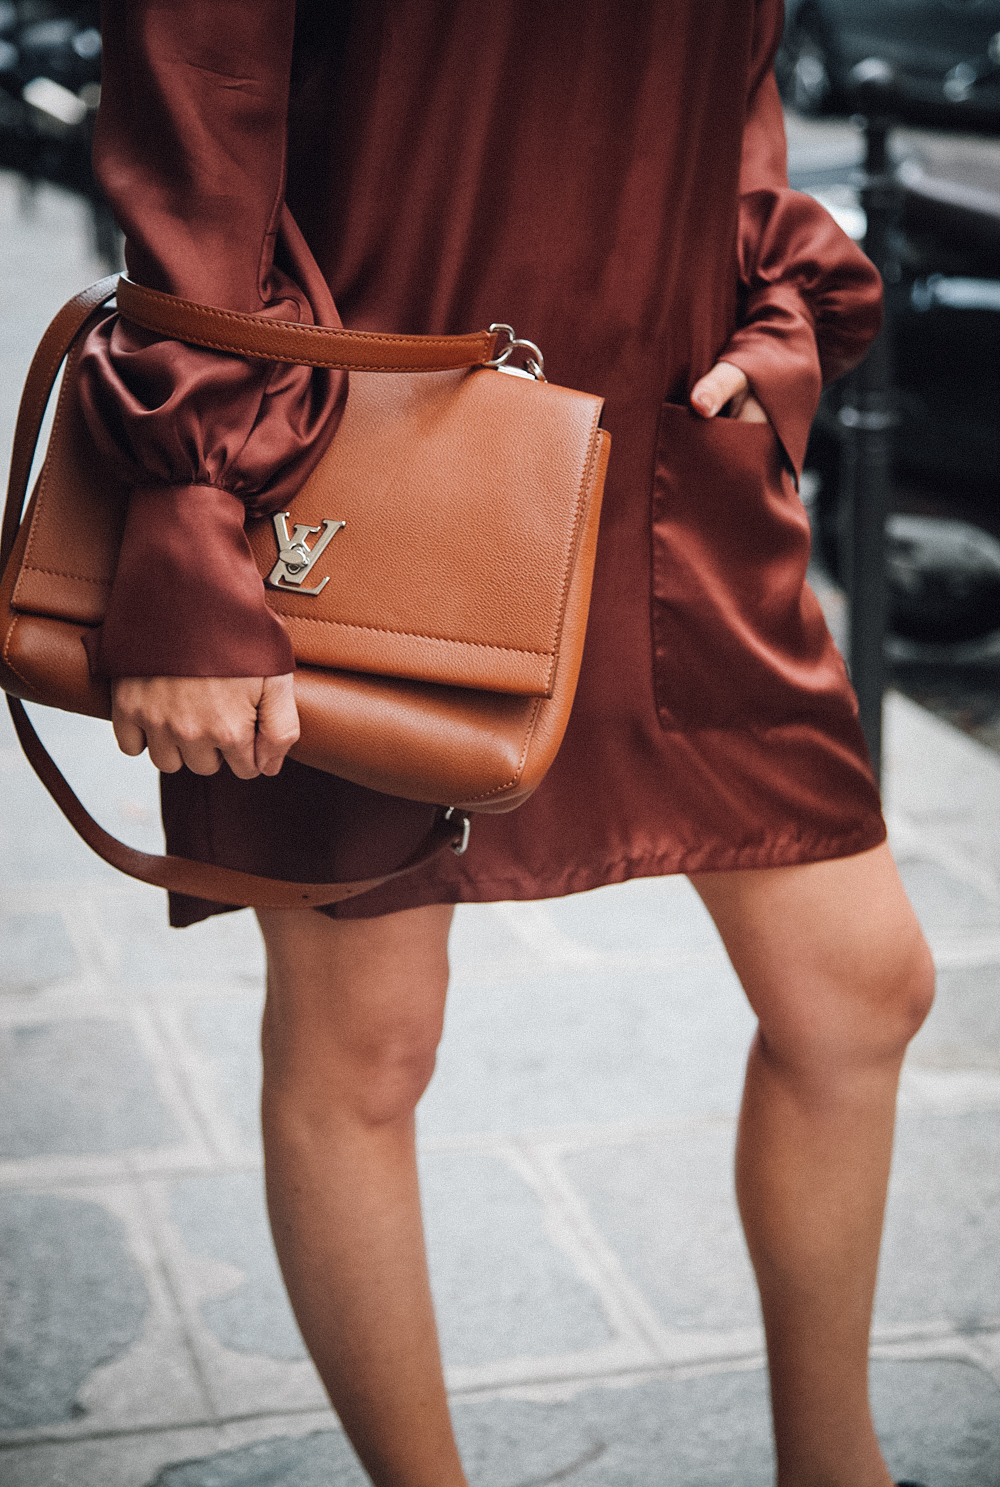 Rue Chateubriand accessorises her outfit with this gorgeous Louis Vuitton satchel. Dress: George Jensen, Bag: Louis Vuitton.